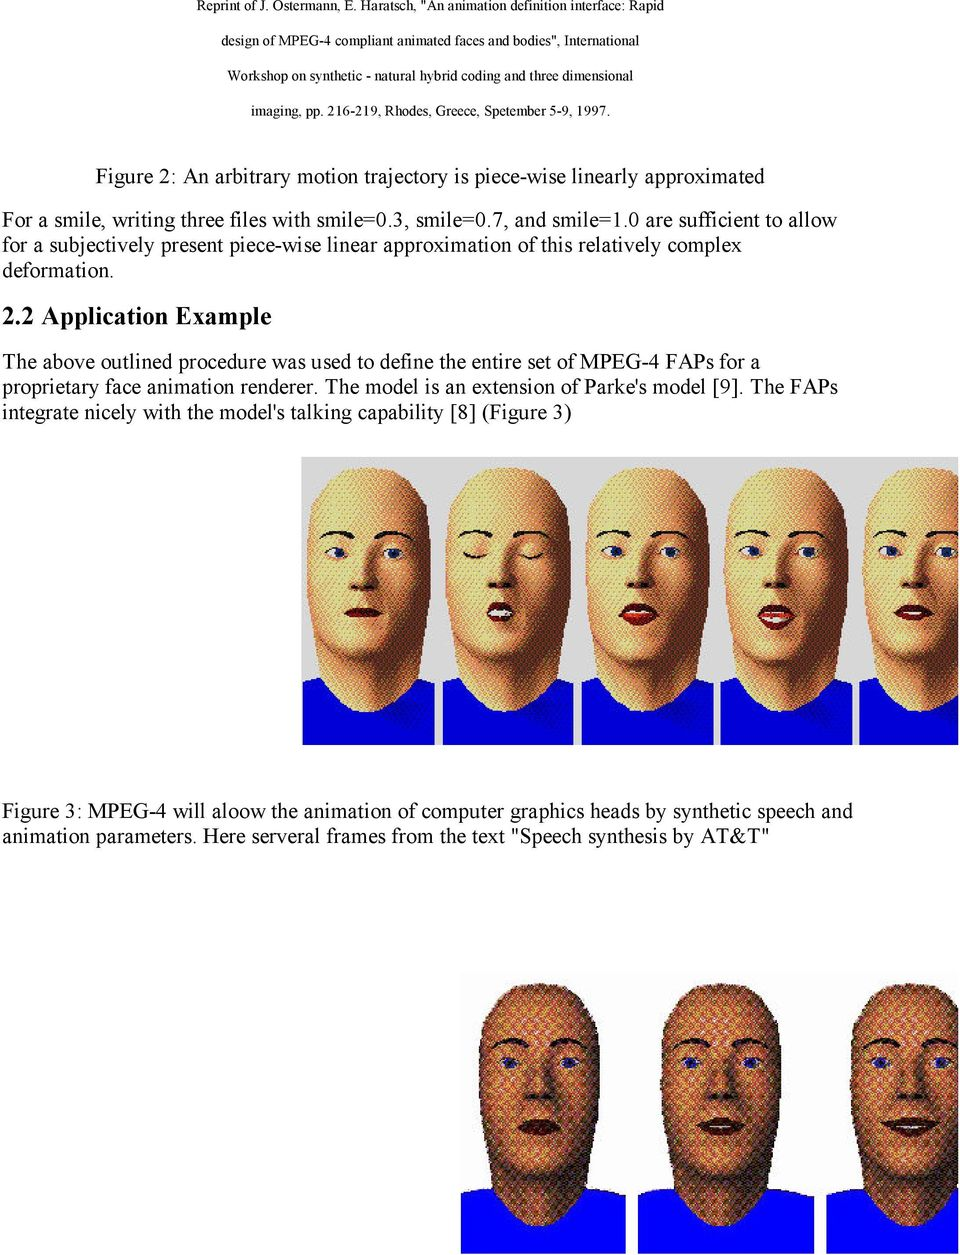 2 Application Example The above outlined procedure was used to define the entire set of MPEG-4 FAPs for a proprietary face animation renderer.